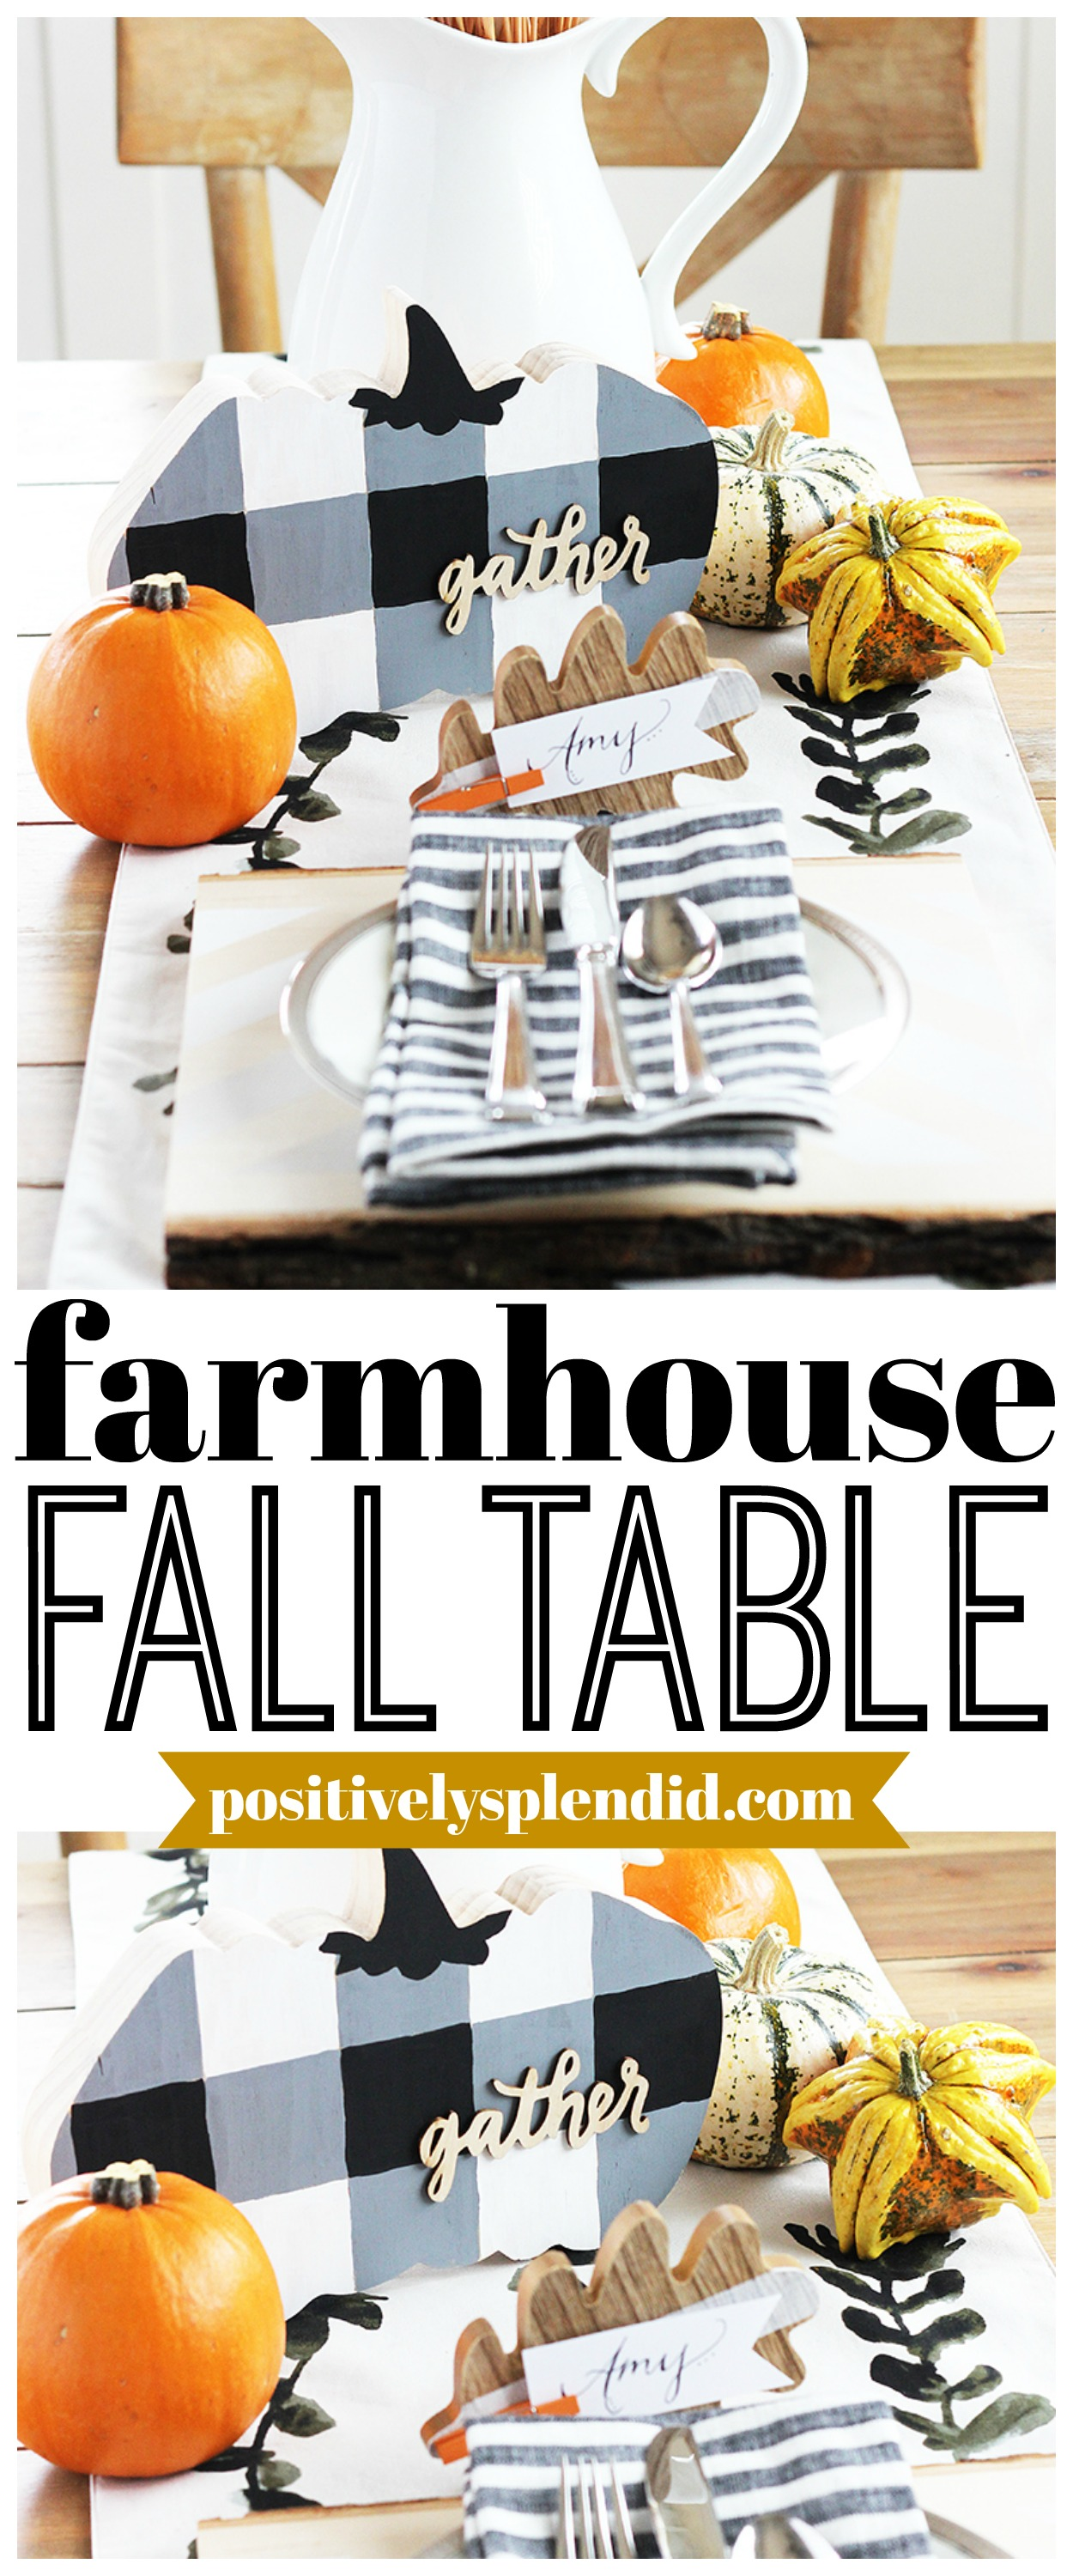 Farmhouse Fall Table DIY Table Setting Idea